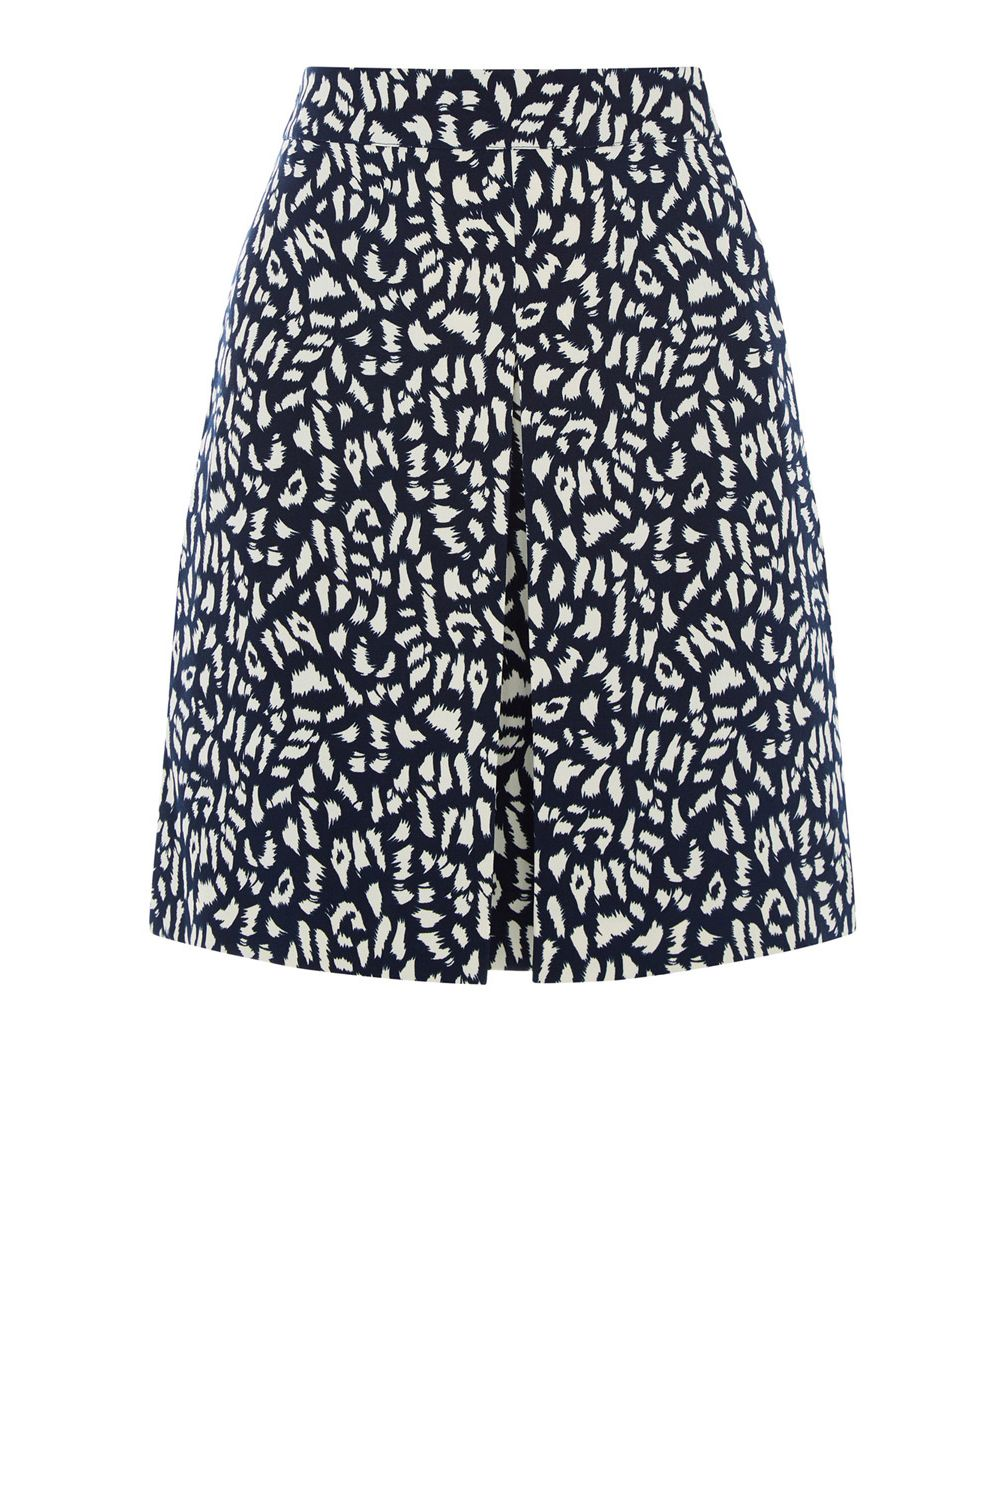 Warehouse Animal Printed Skirt MultiColoured